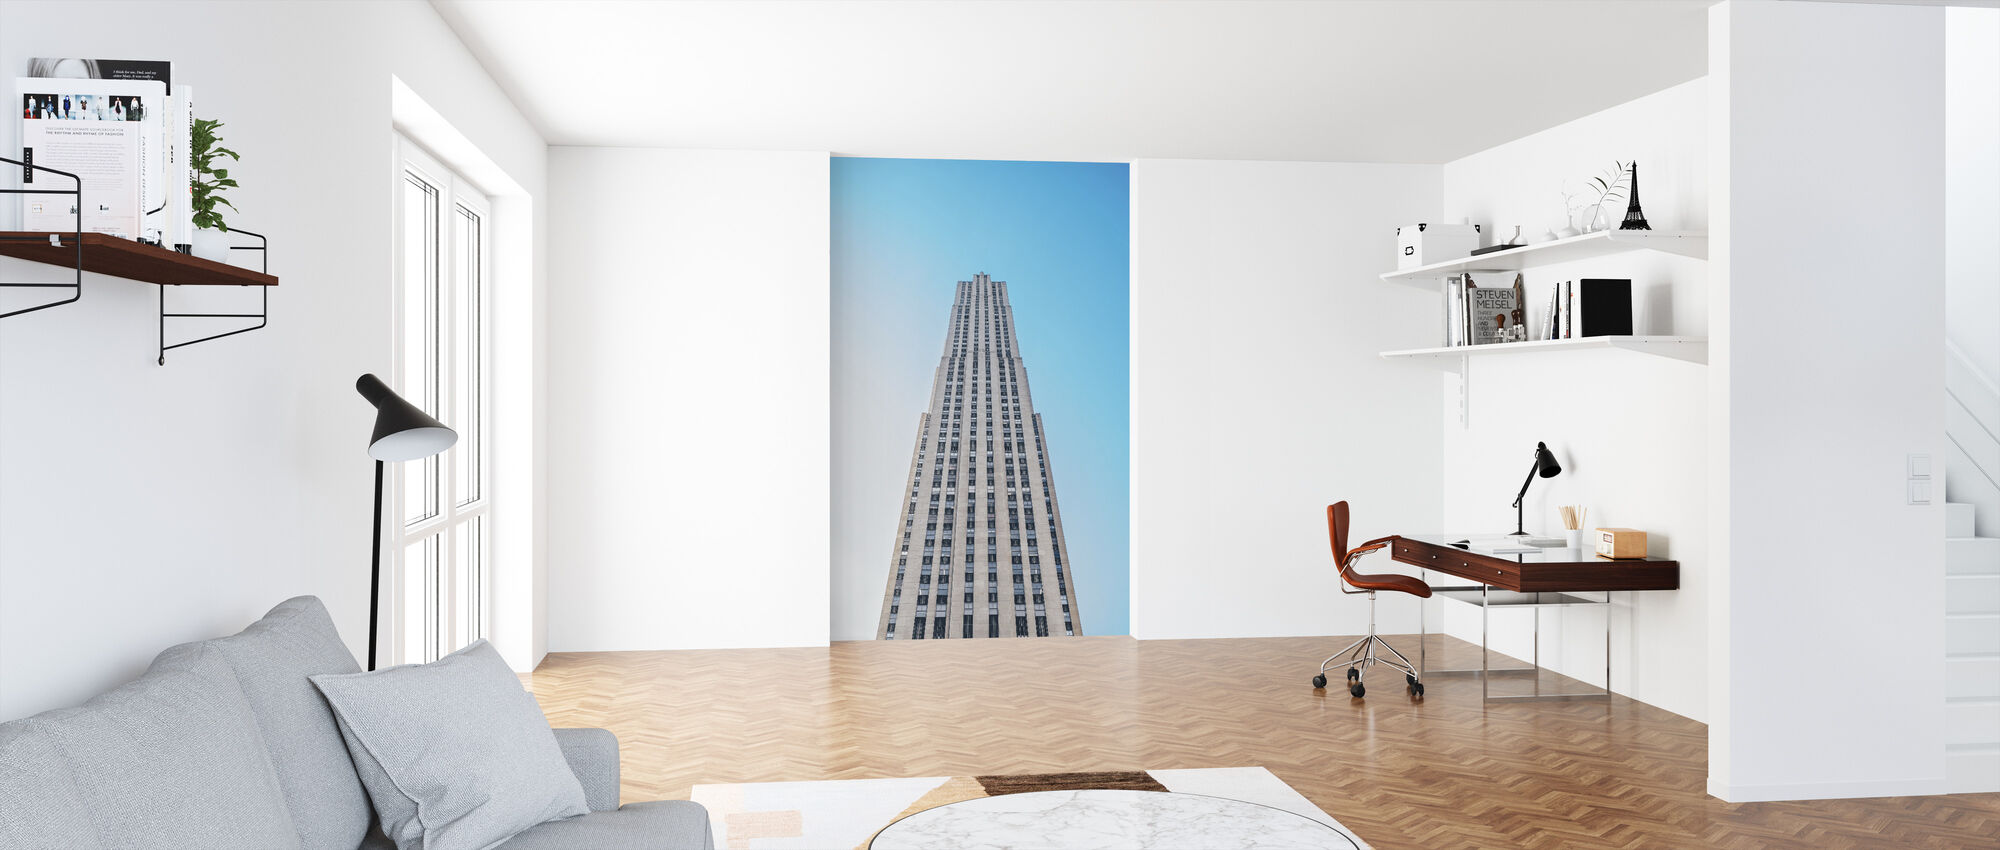 Downtown Skyscrapper - Wallpaper - Office